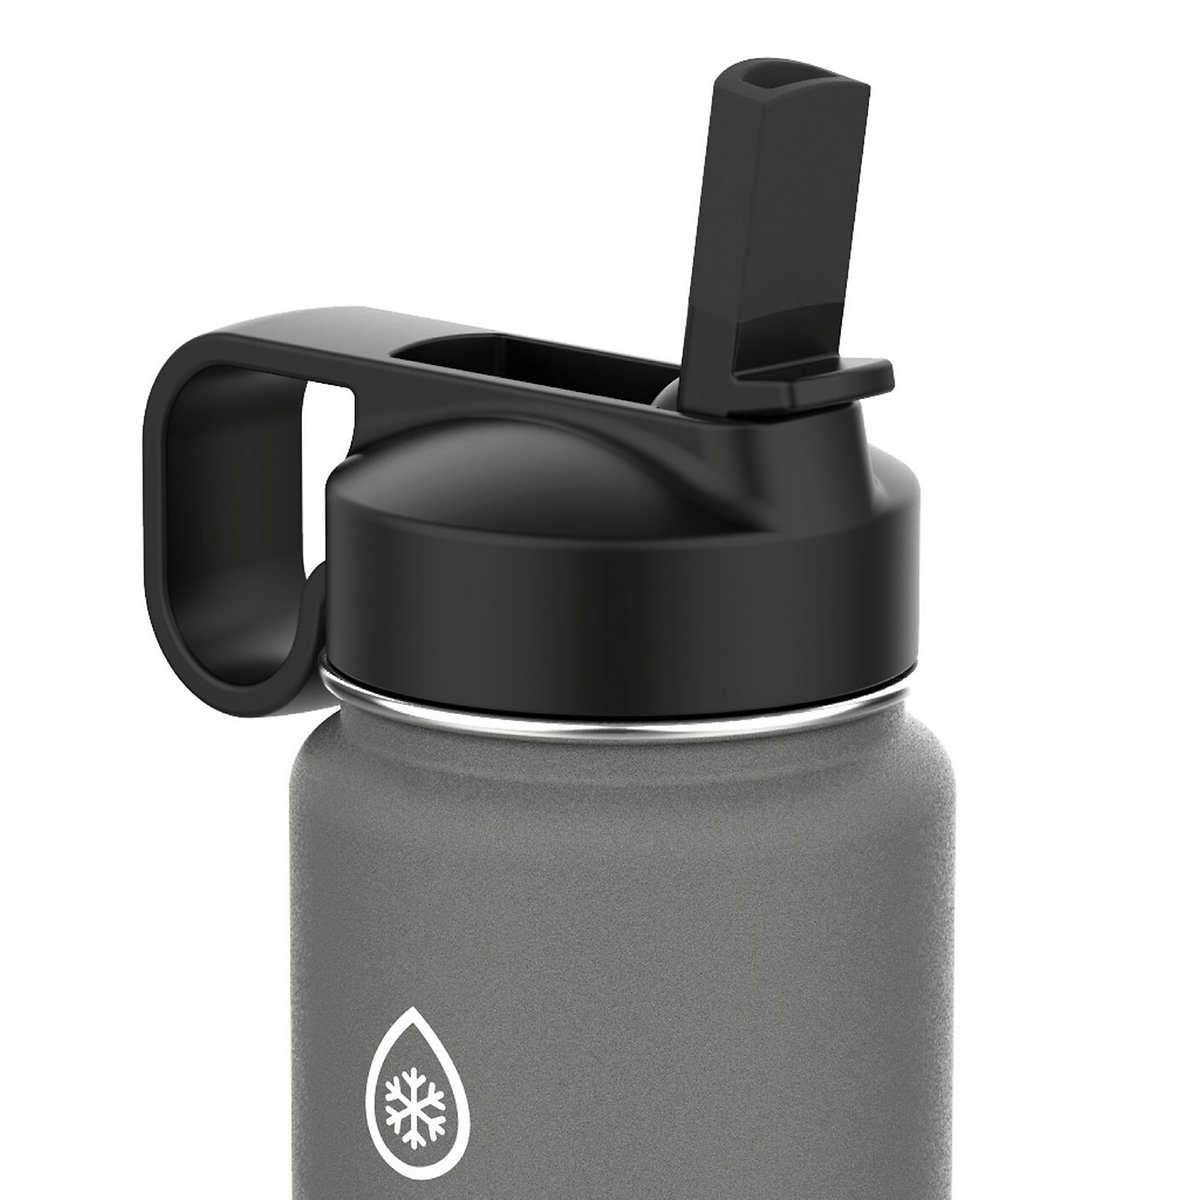 ThermoFlask 24-Ounce Double Wall Vacuum Insulated Stainless Steel Water Bottles